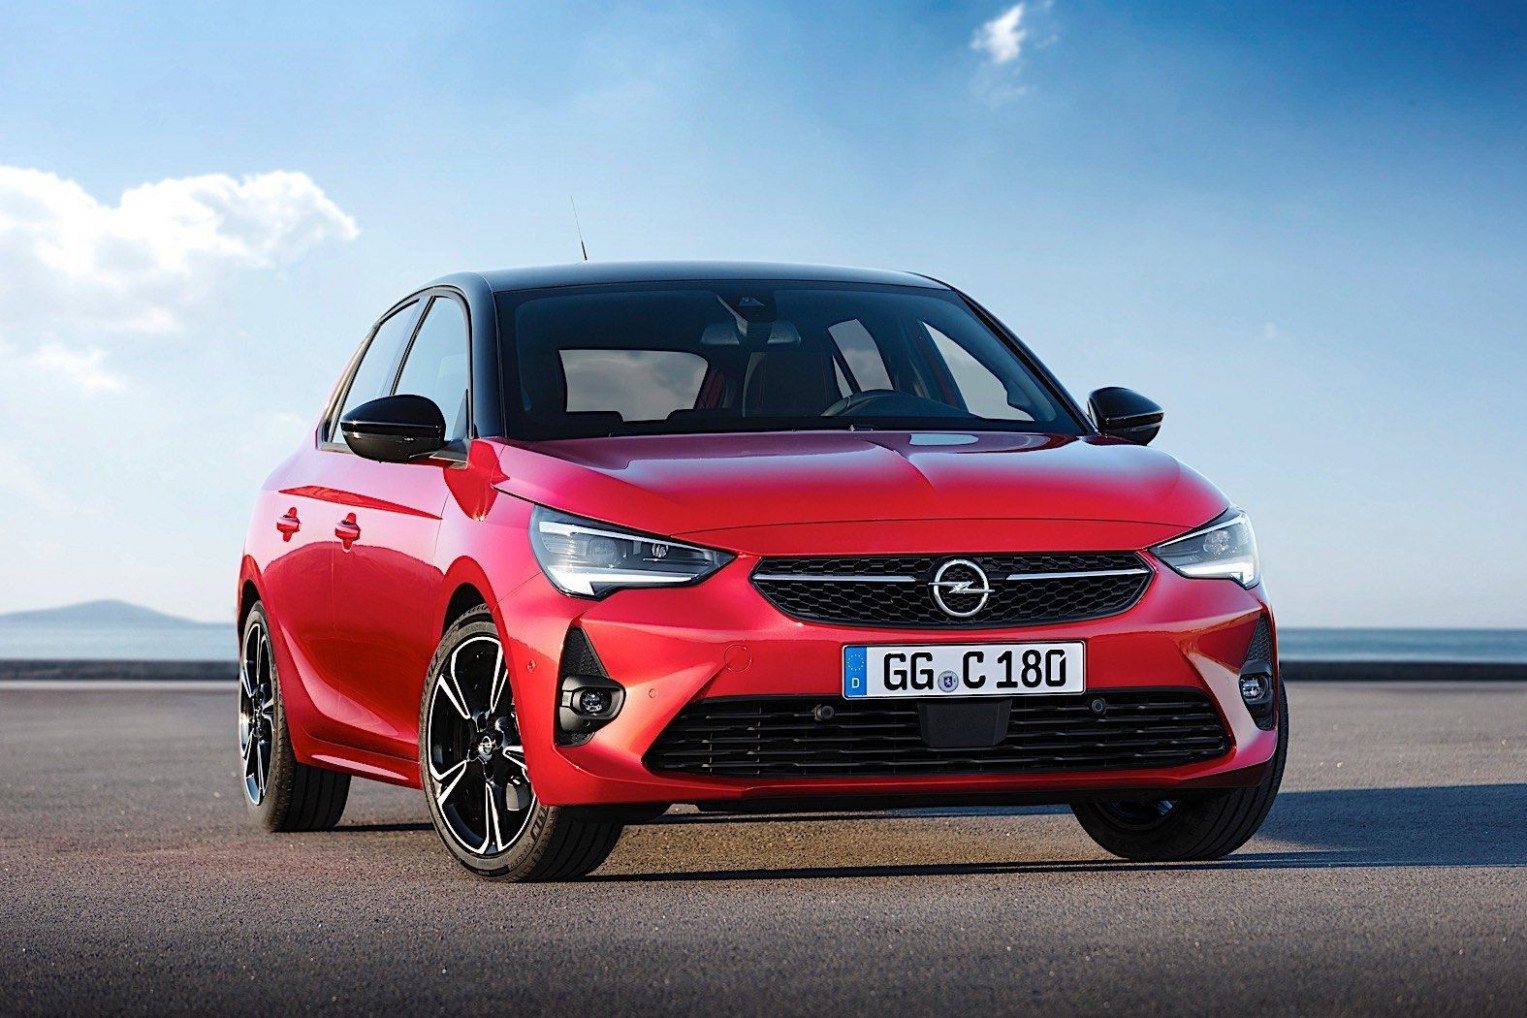 when will the Opel Astra Opc 8 be released | Opel corsa, Opel ..